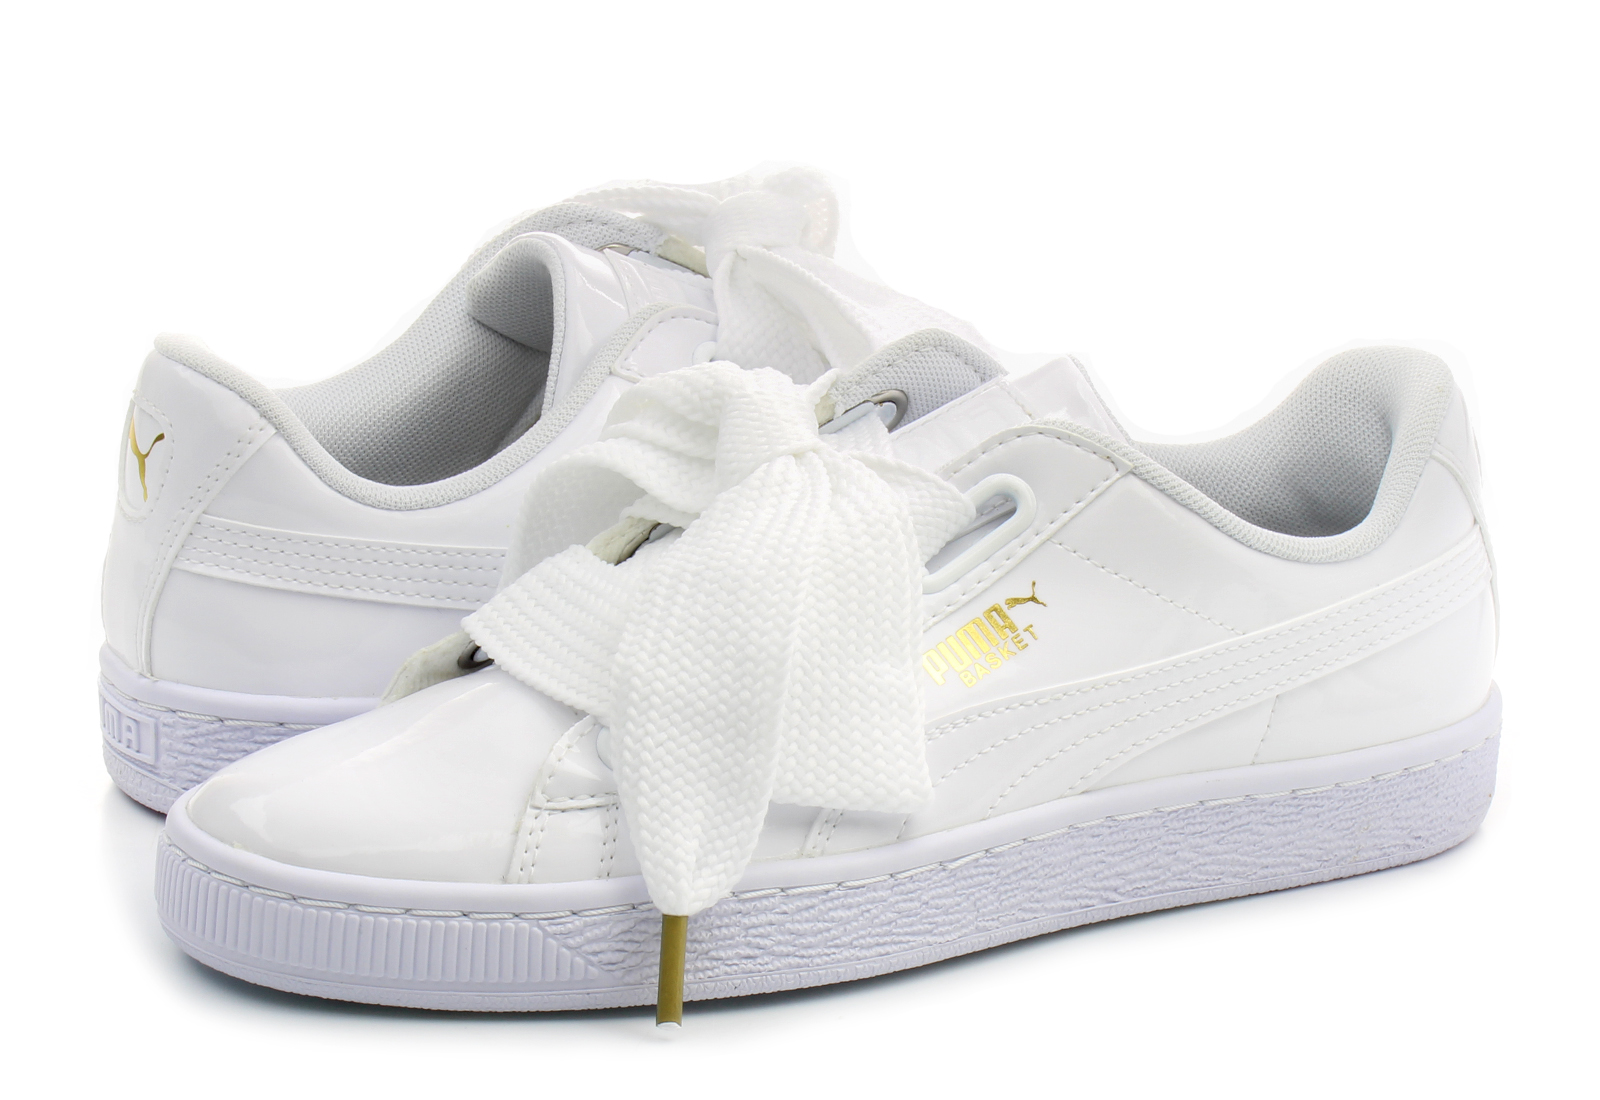 puma shoes basket heart patent wns 36307302 wht online shop for sneakers shoes and boots. Black Bedroom Furniture Sets. Home Design Ideas